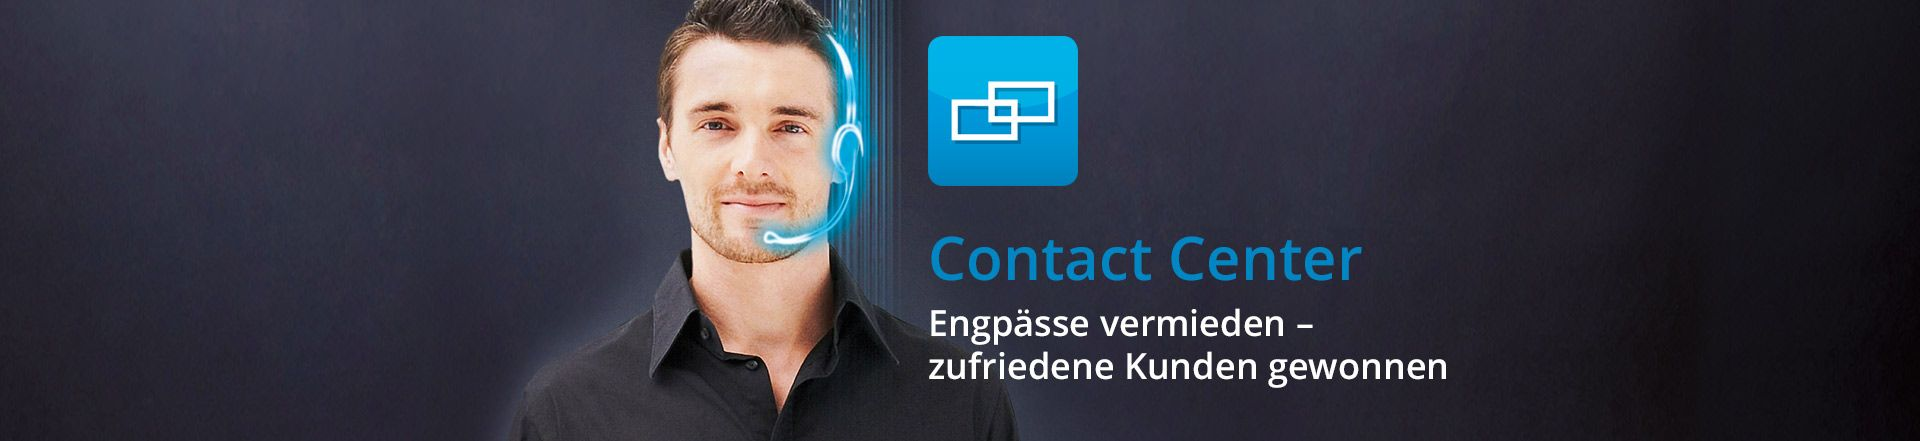 3iMedia GmbH - Contact Center